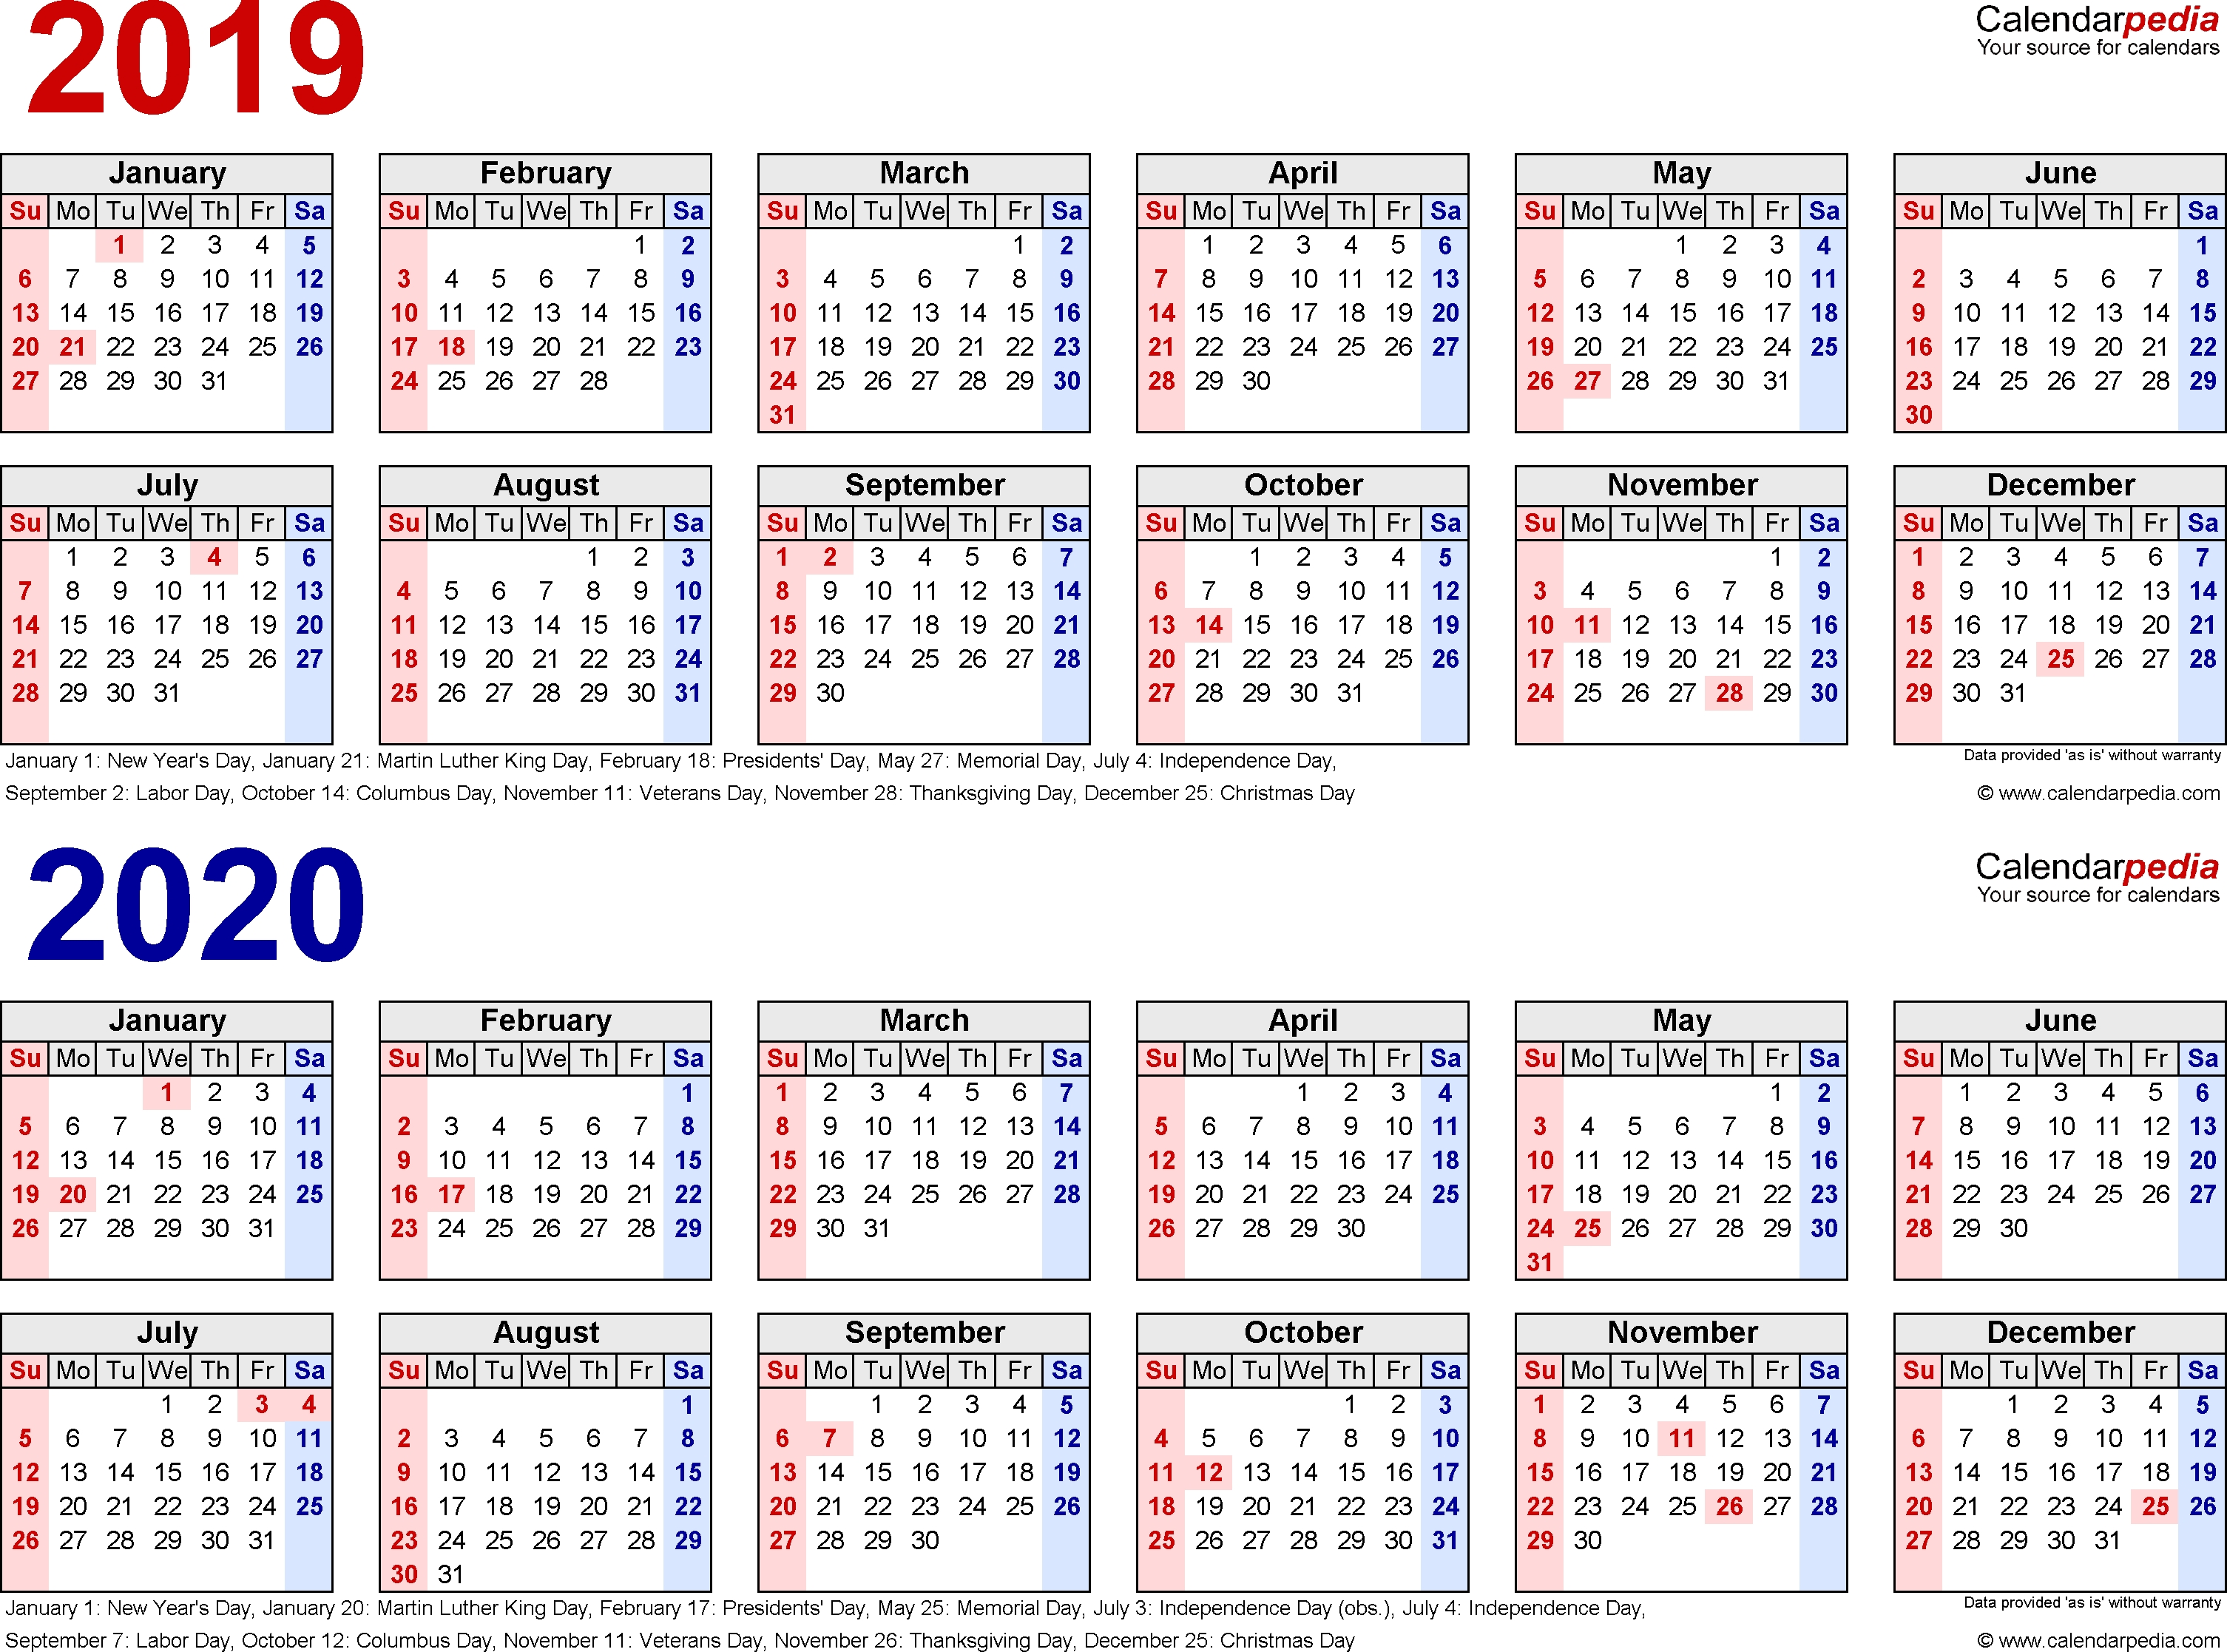 2019-2020 Calendar - Free Printable Two-Year Word Calendars within Blank Calendar Pages 2019-2020